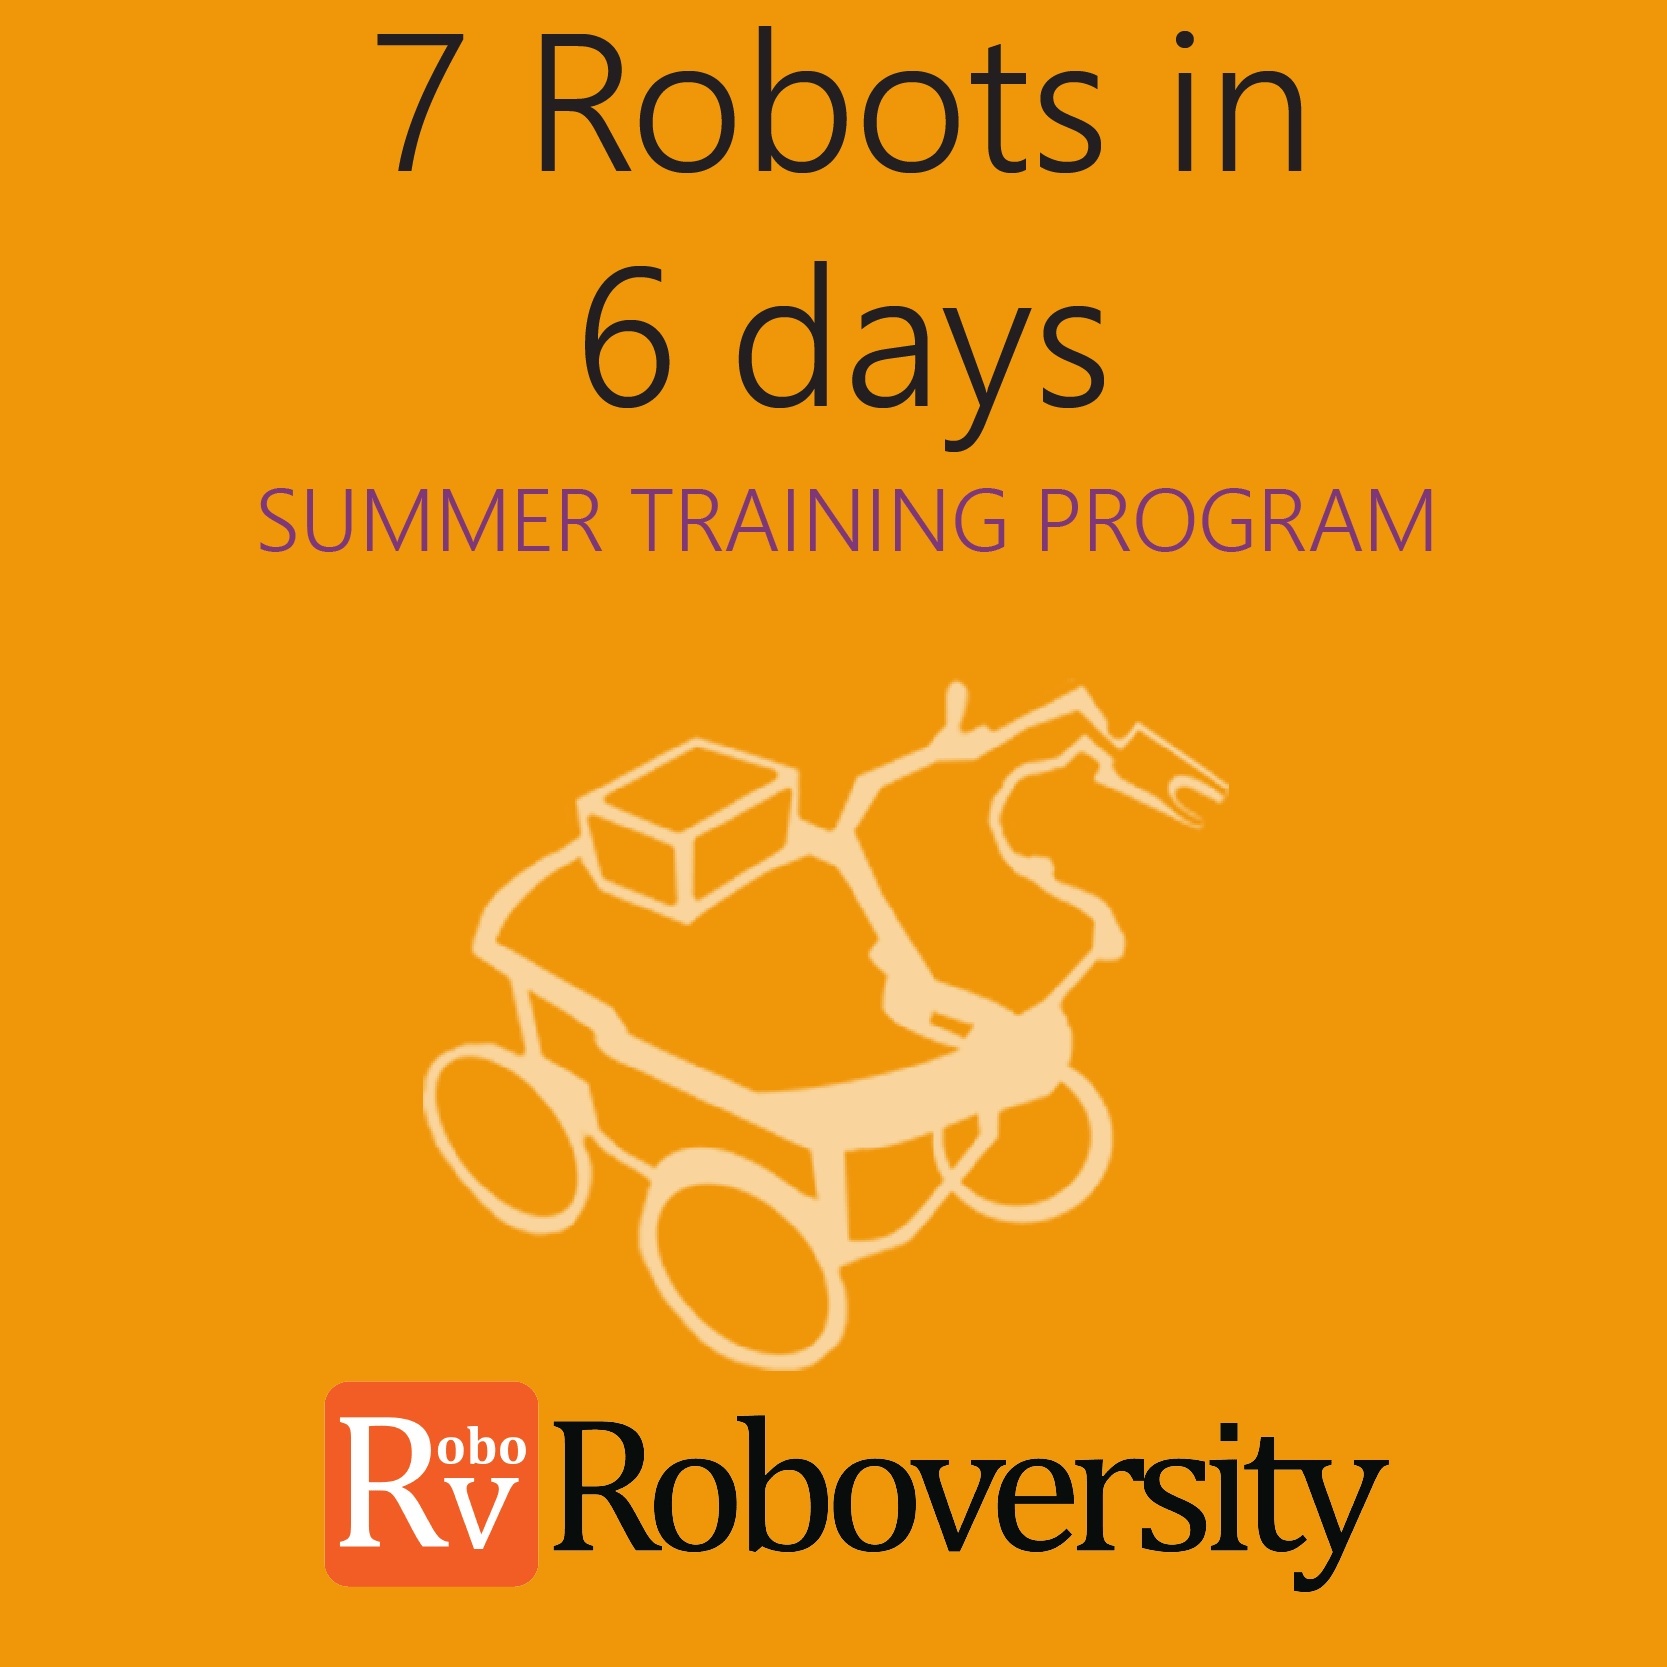 Summer Training Program on 7 Robots in 6 Days  at Skyfi Labs Center